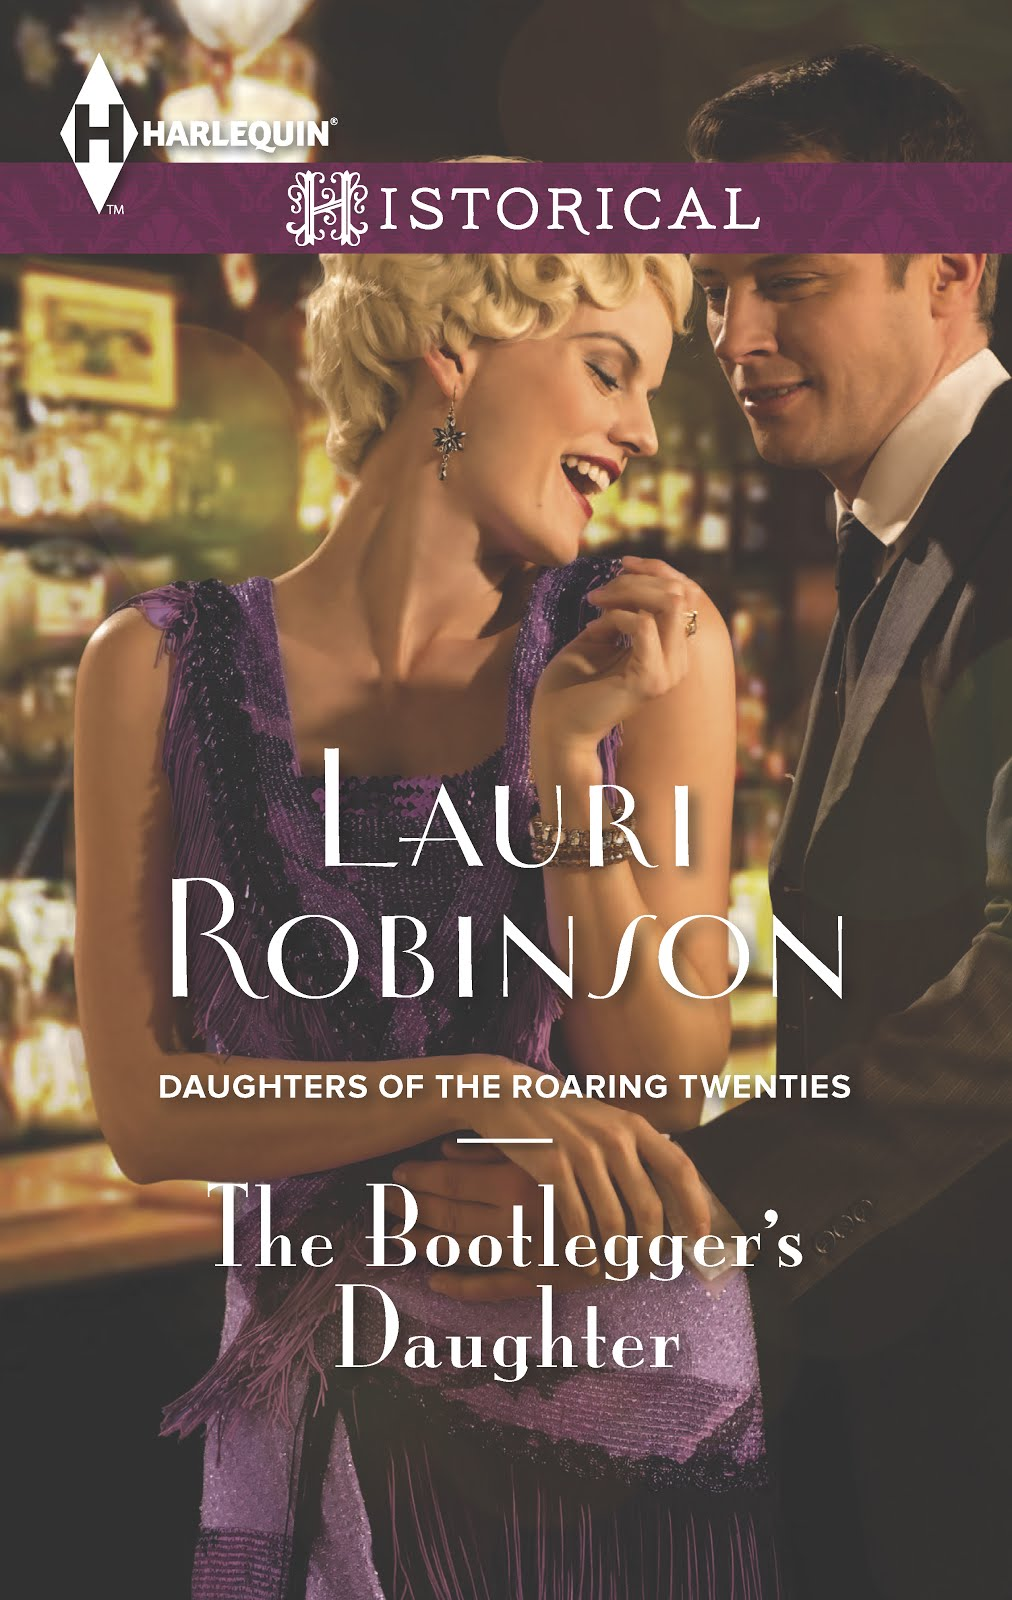 The Bootlegger's Daugher